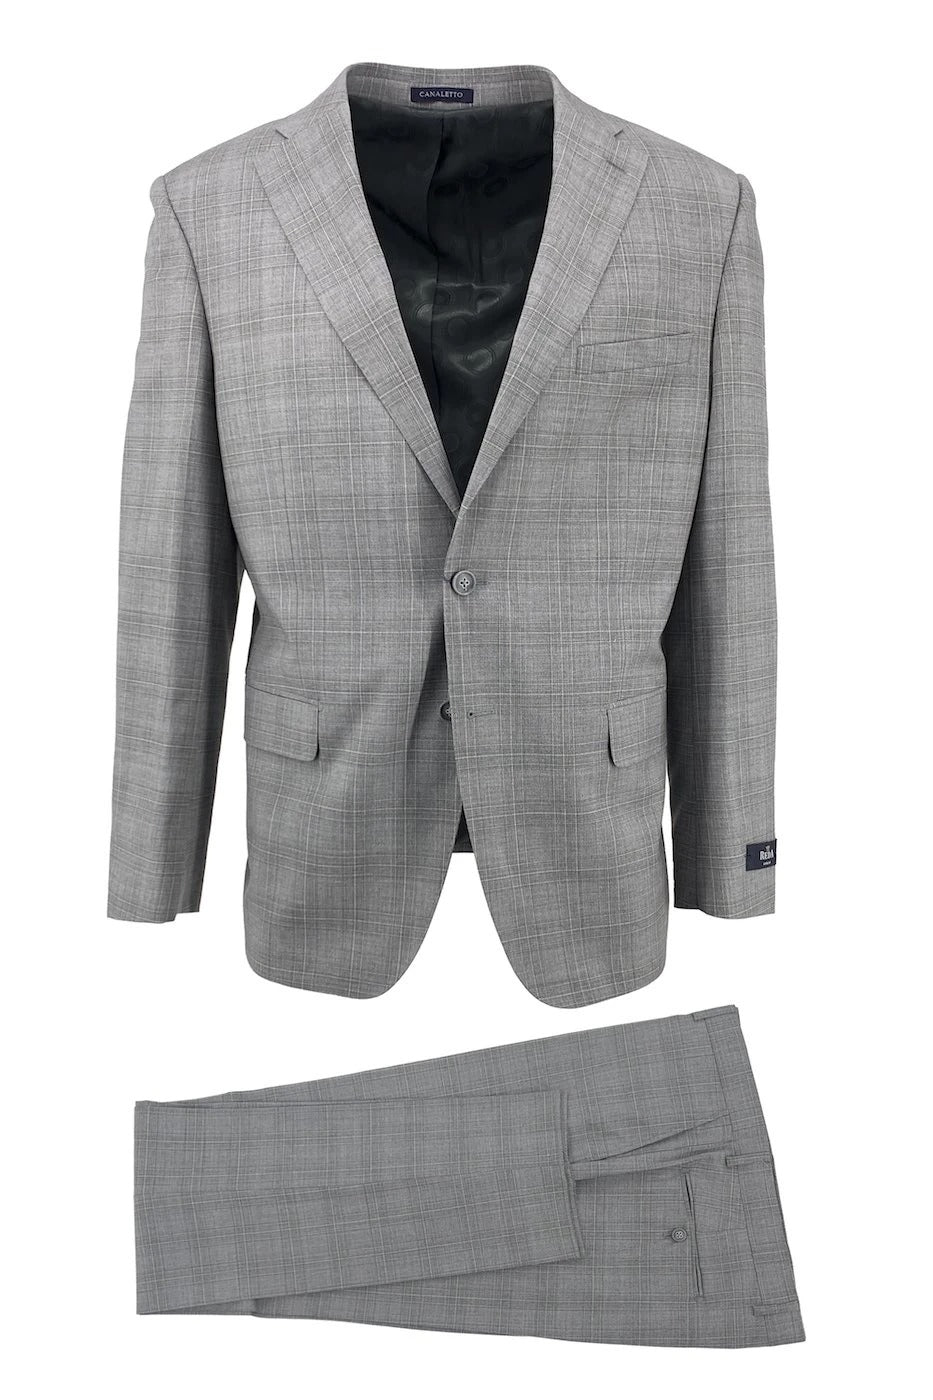 Canaletto Gray with Oatmeal Windowpane Dolcetto Modern Fit Pure Wool Suit by Reda CR141606/1